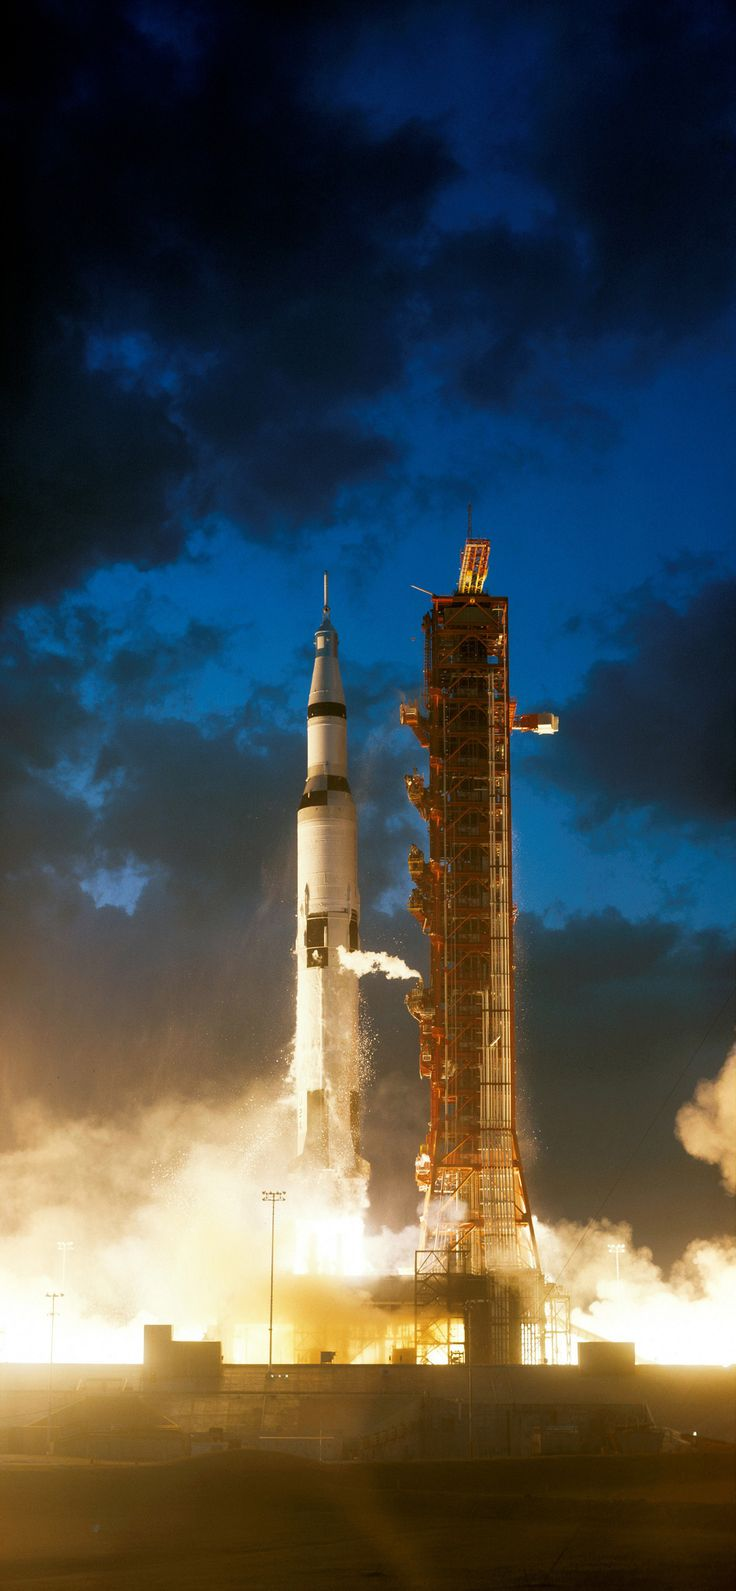 https://flic.kr/p/fpJ1Rg | Apollo 4 liftoff | The Apollo 4 unmanned mission lifts off from launch pad 39A at the Kennedy Space Center. This would be the first flight for the enormous Saturn V rocket that would eventually take humans to the Moon.  Image # : s67-50903